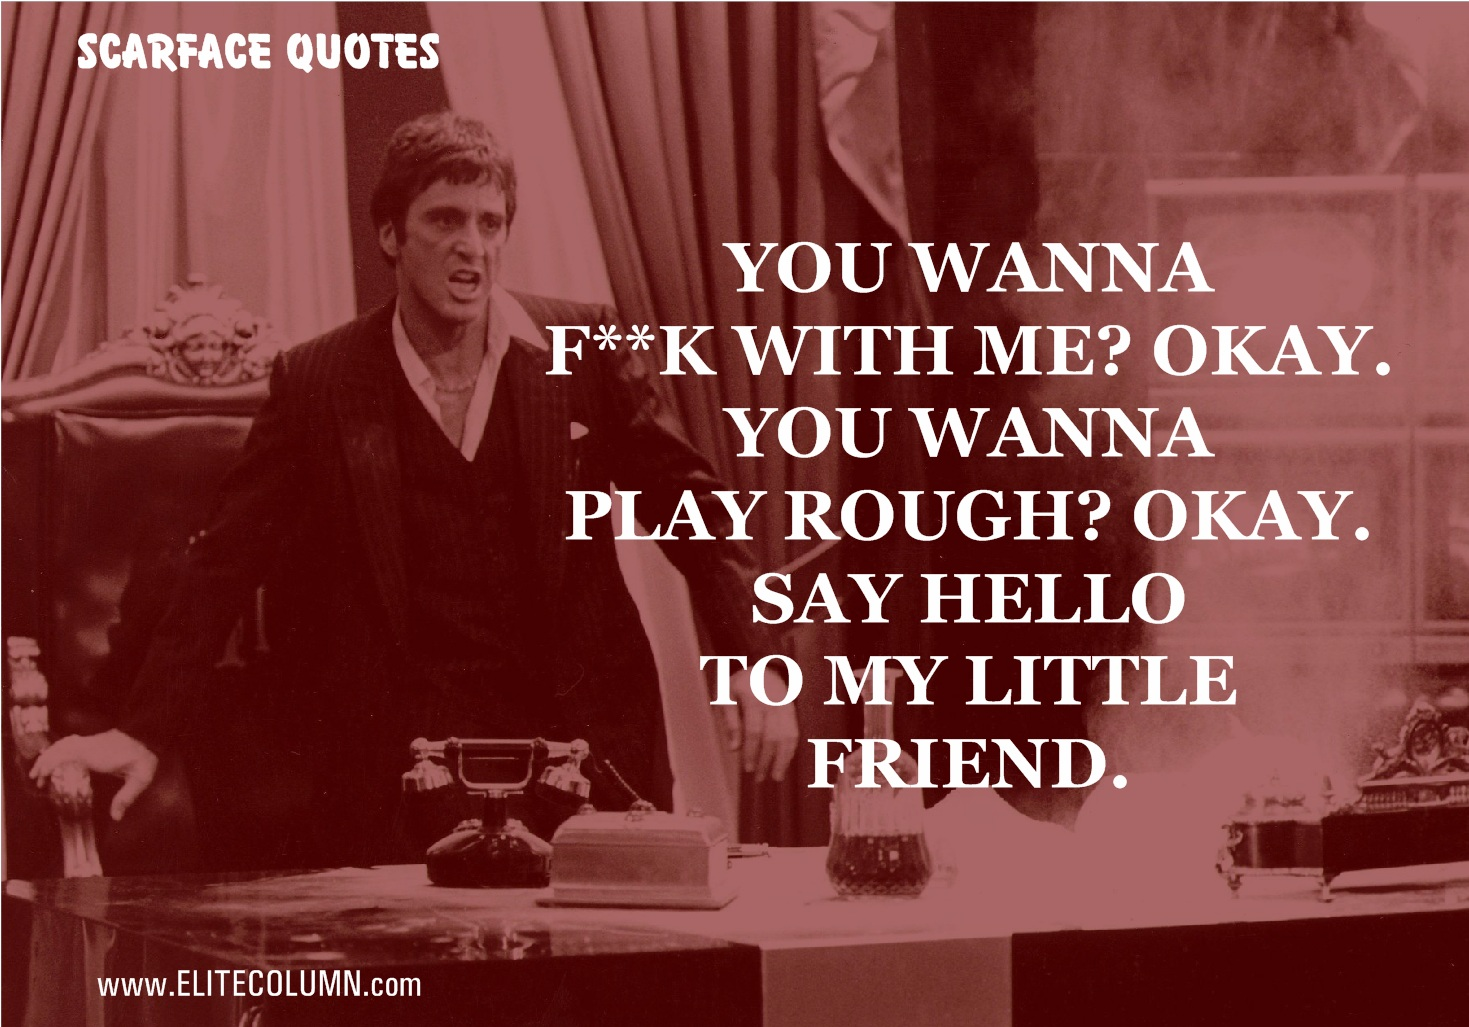 Scarface Quotes (1)